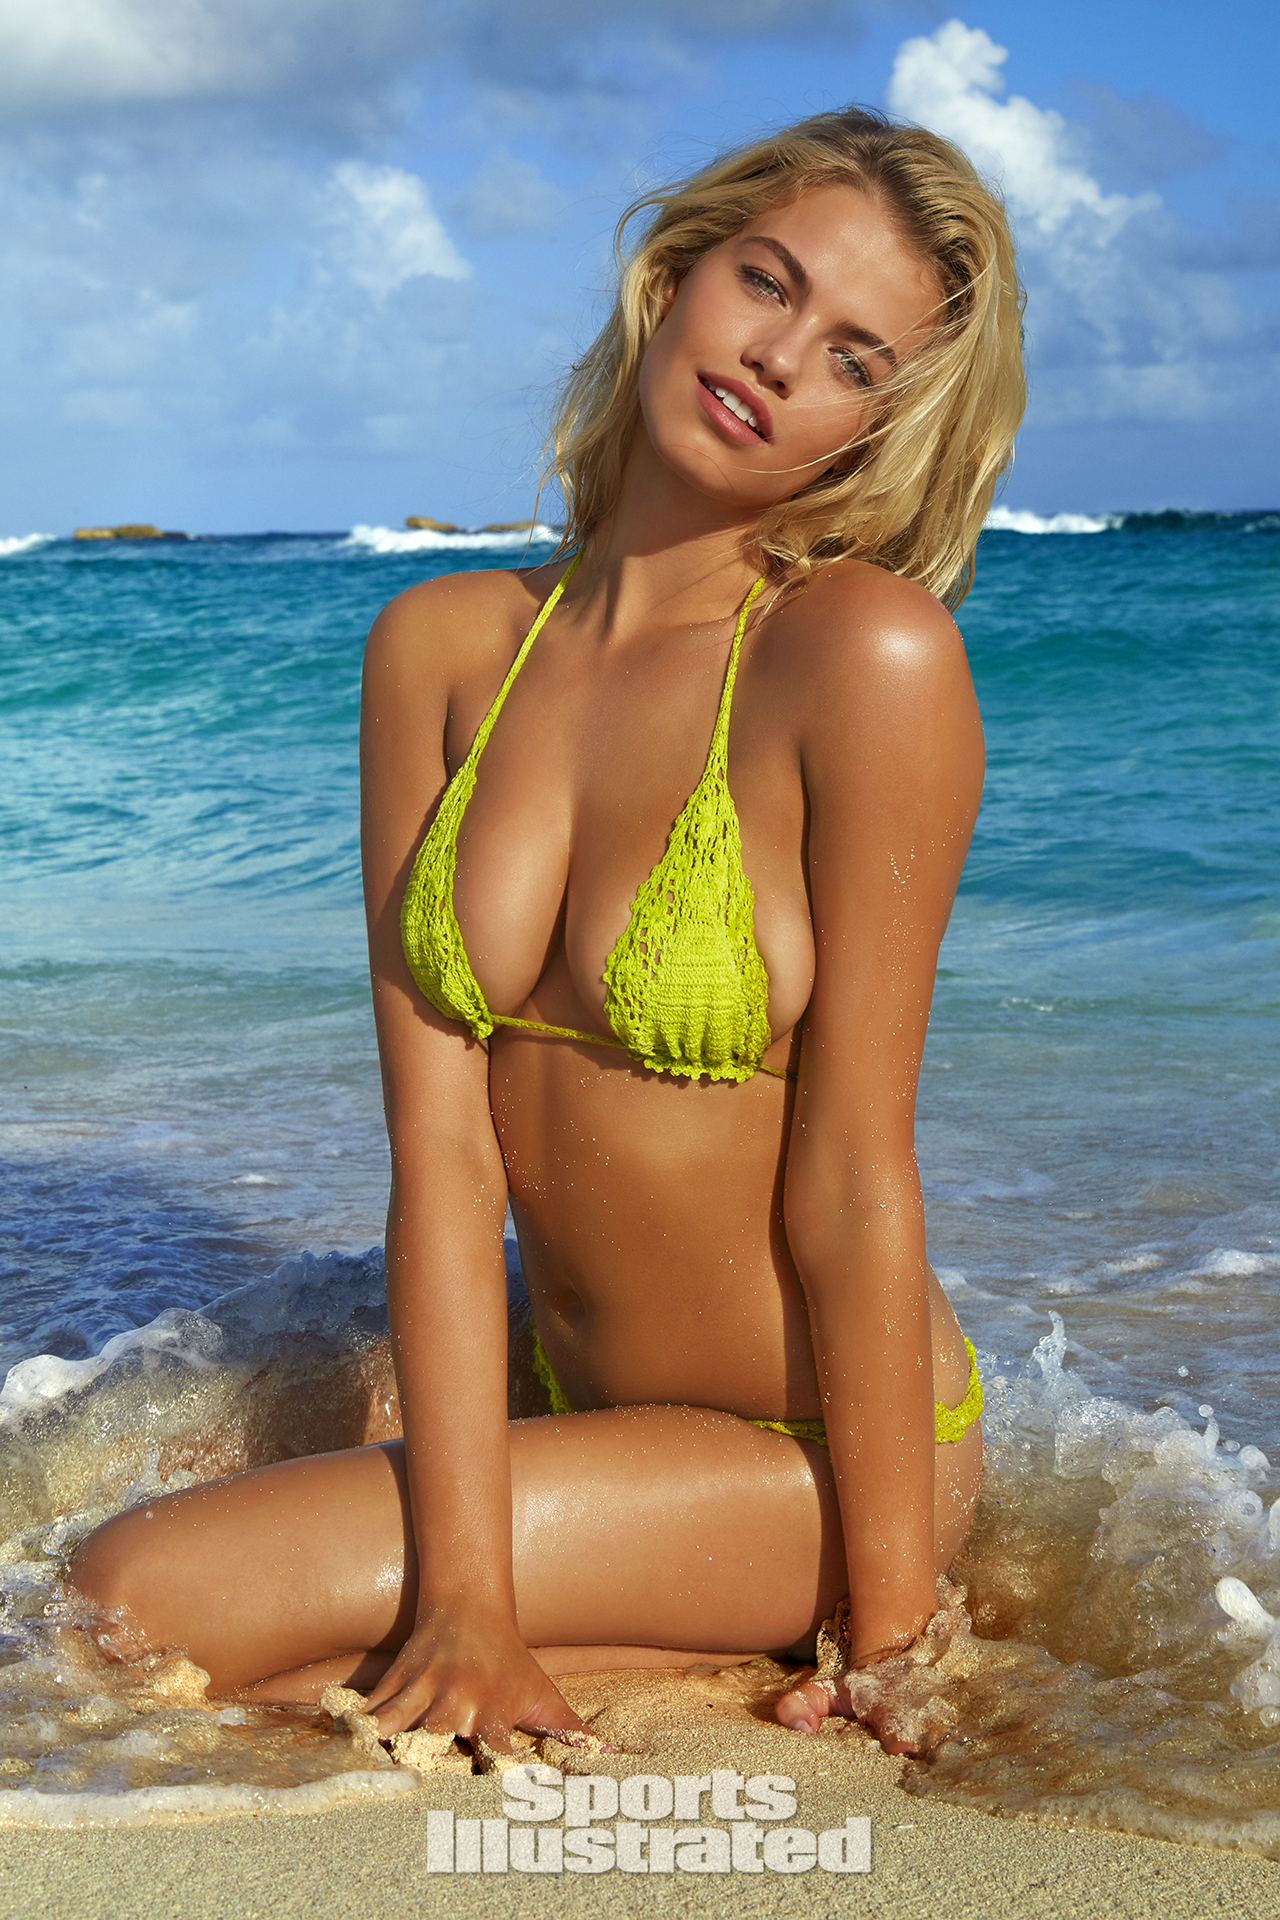 Hailey Clauson was photographed by James Macari in Turks & Caicos. Swimsuit by Anna Kosturova.